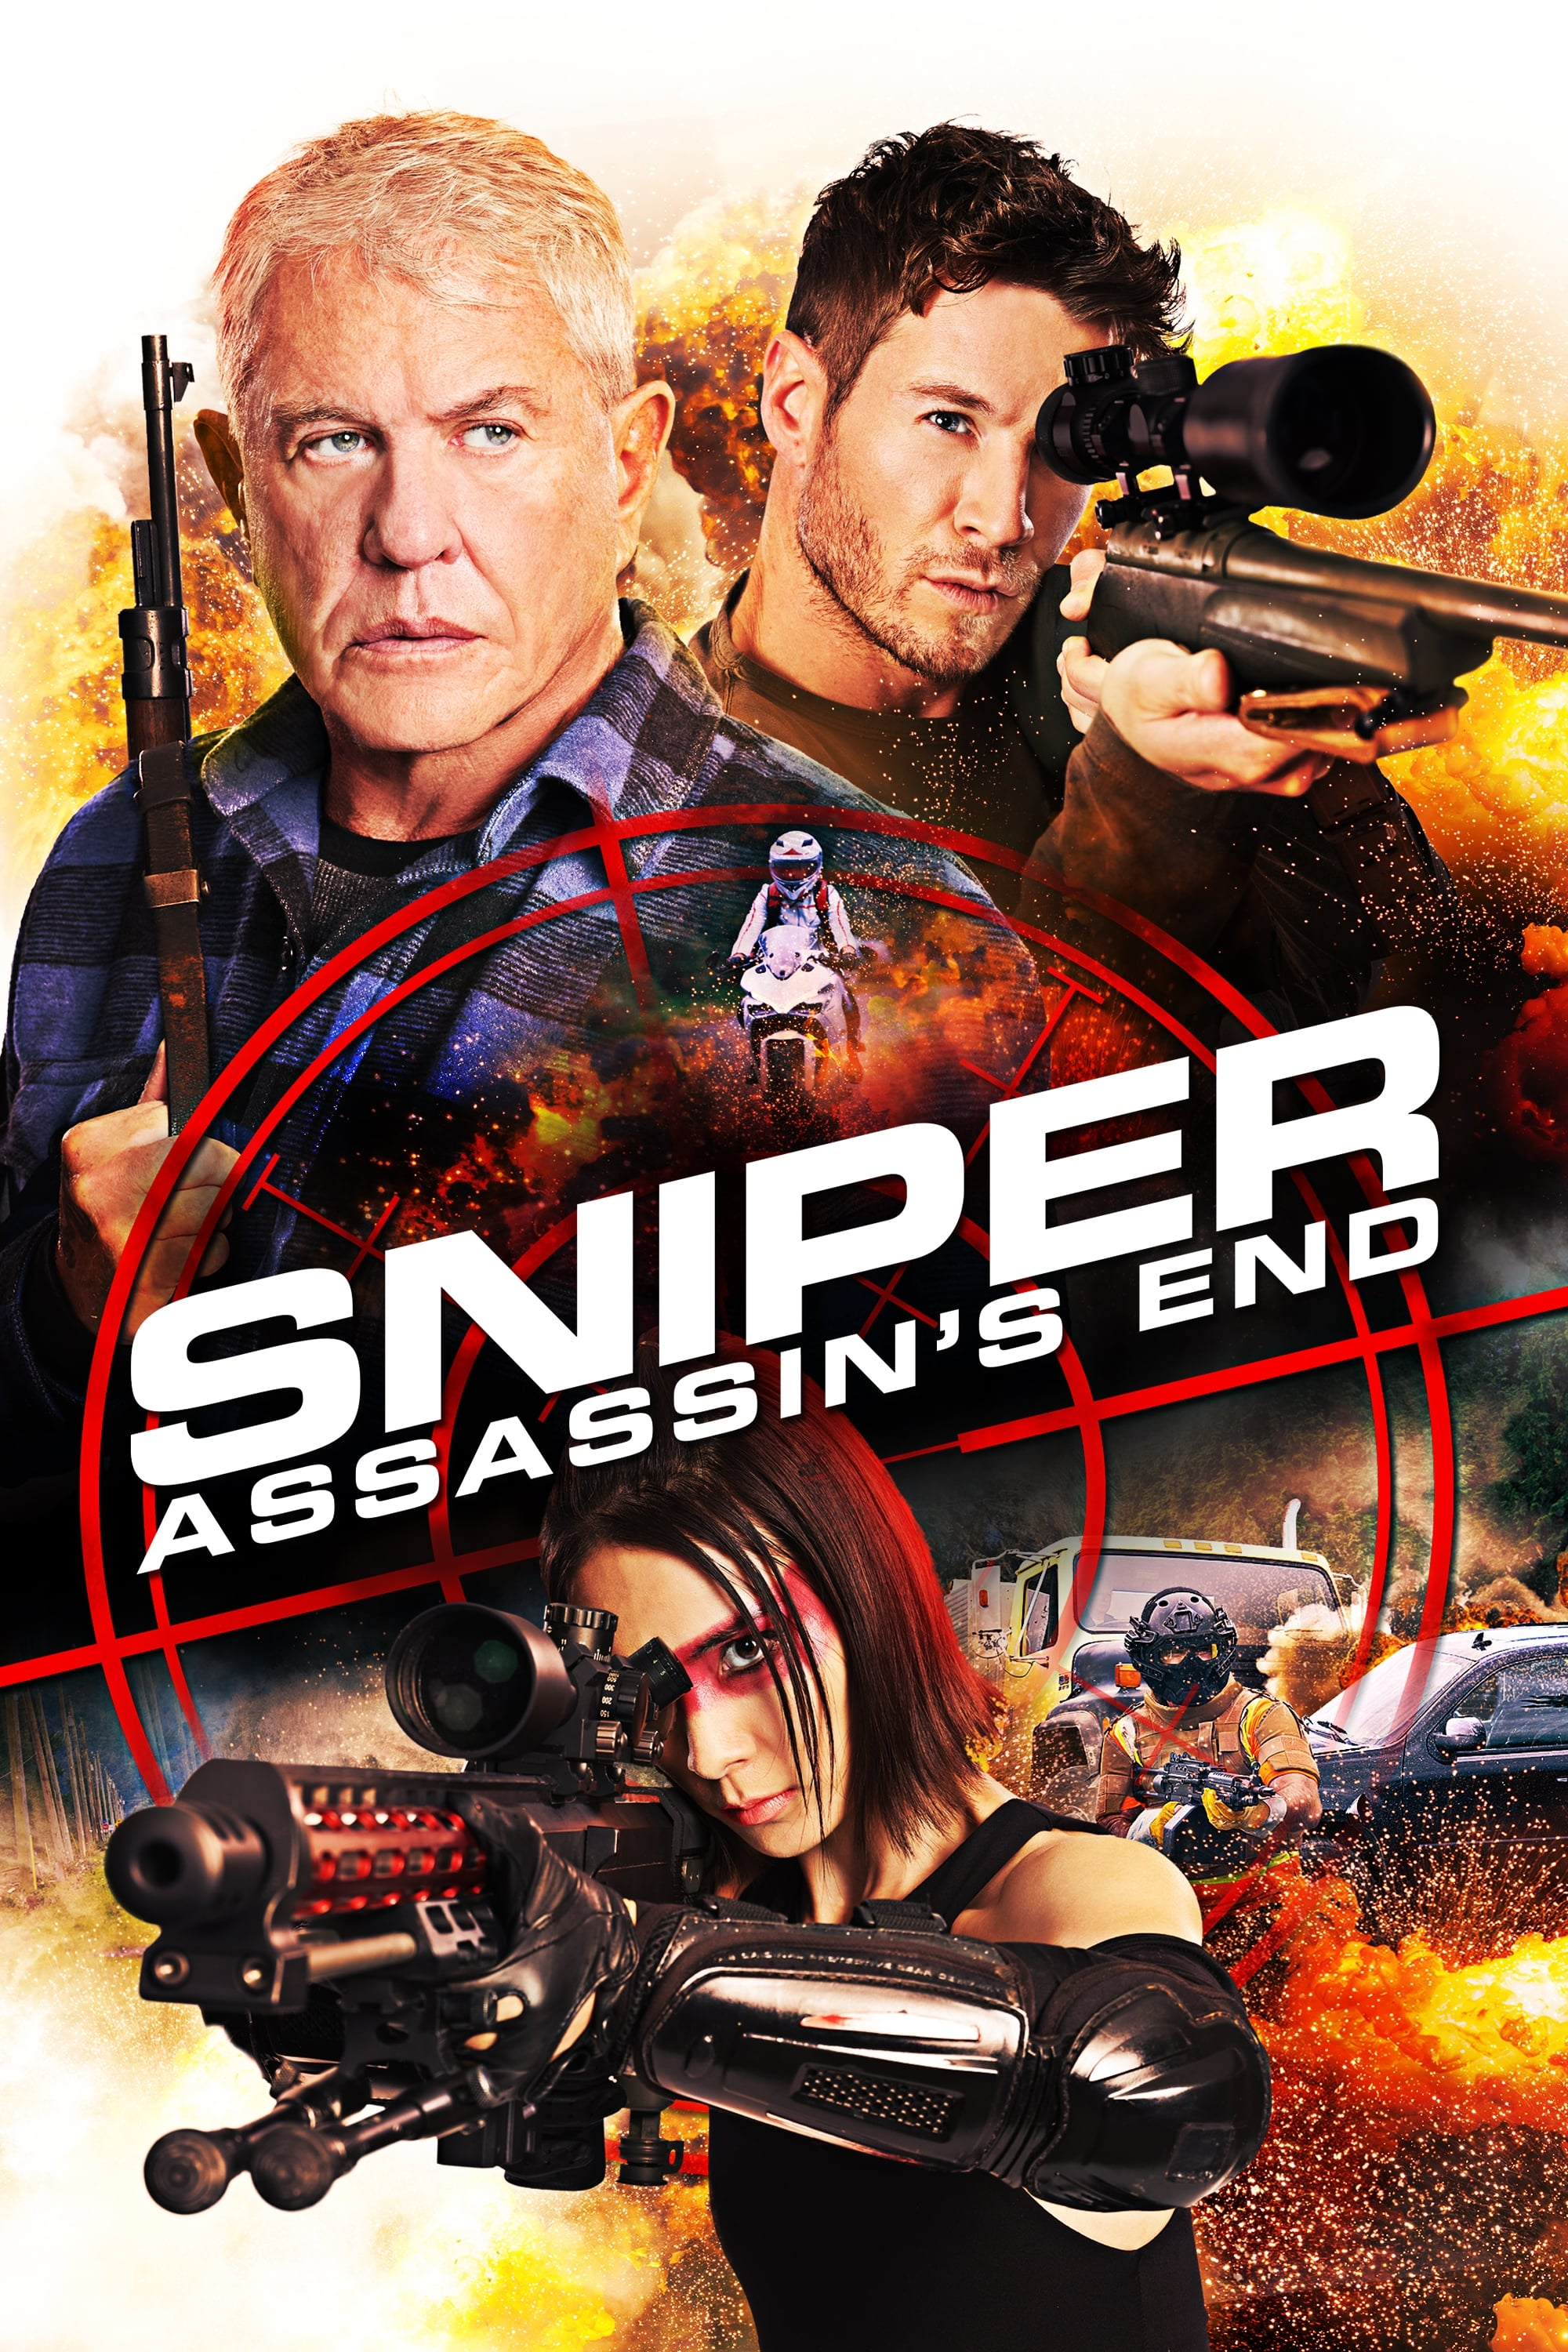 Sniper-8-ASSaSSinS-End-2020-576